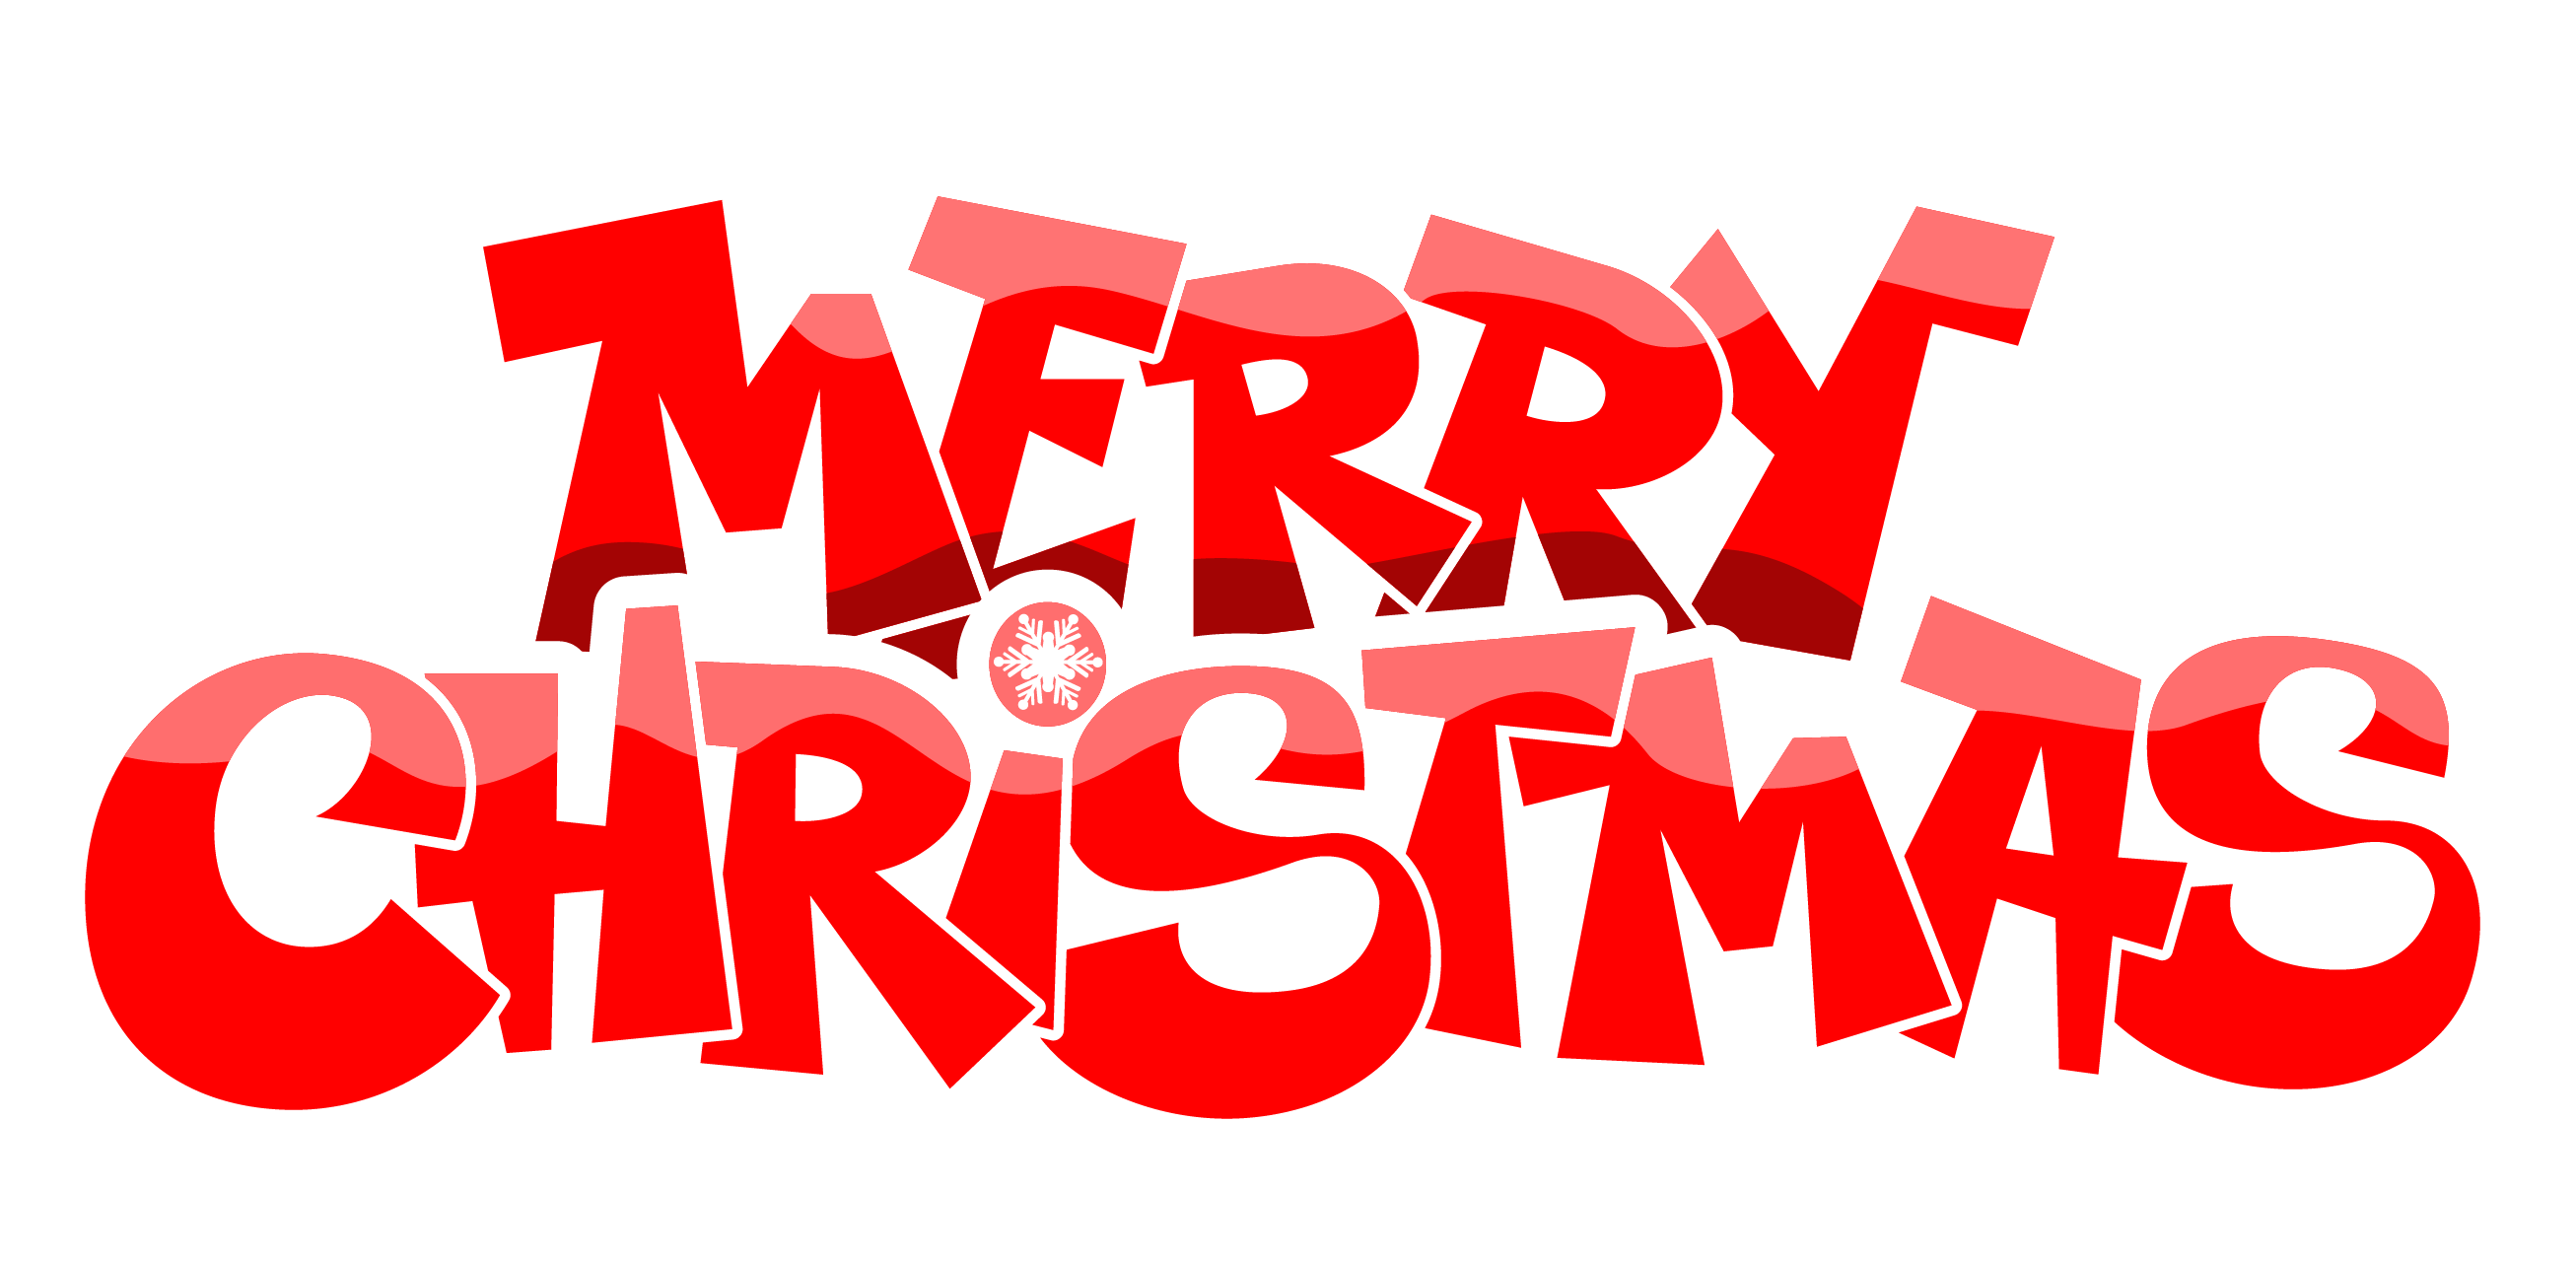 Merry christmas png images. Text gallery yopriceville high